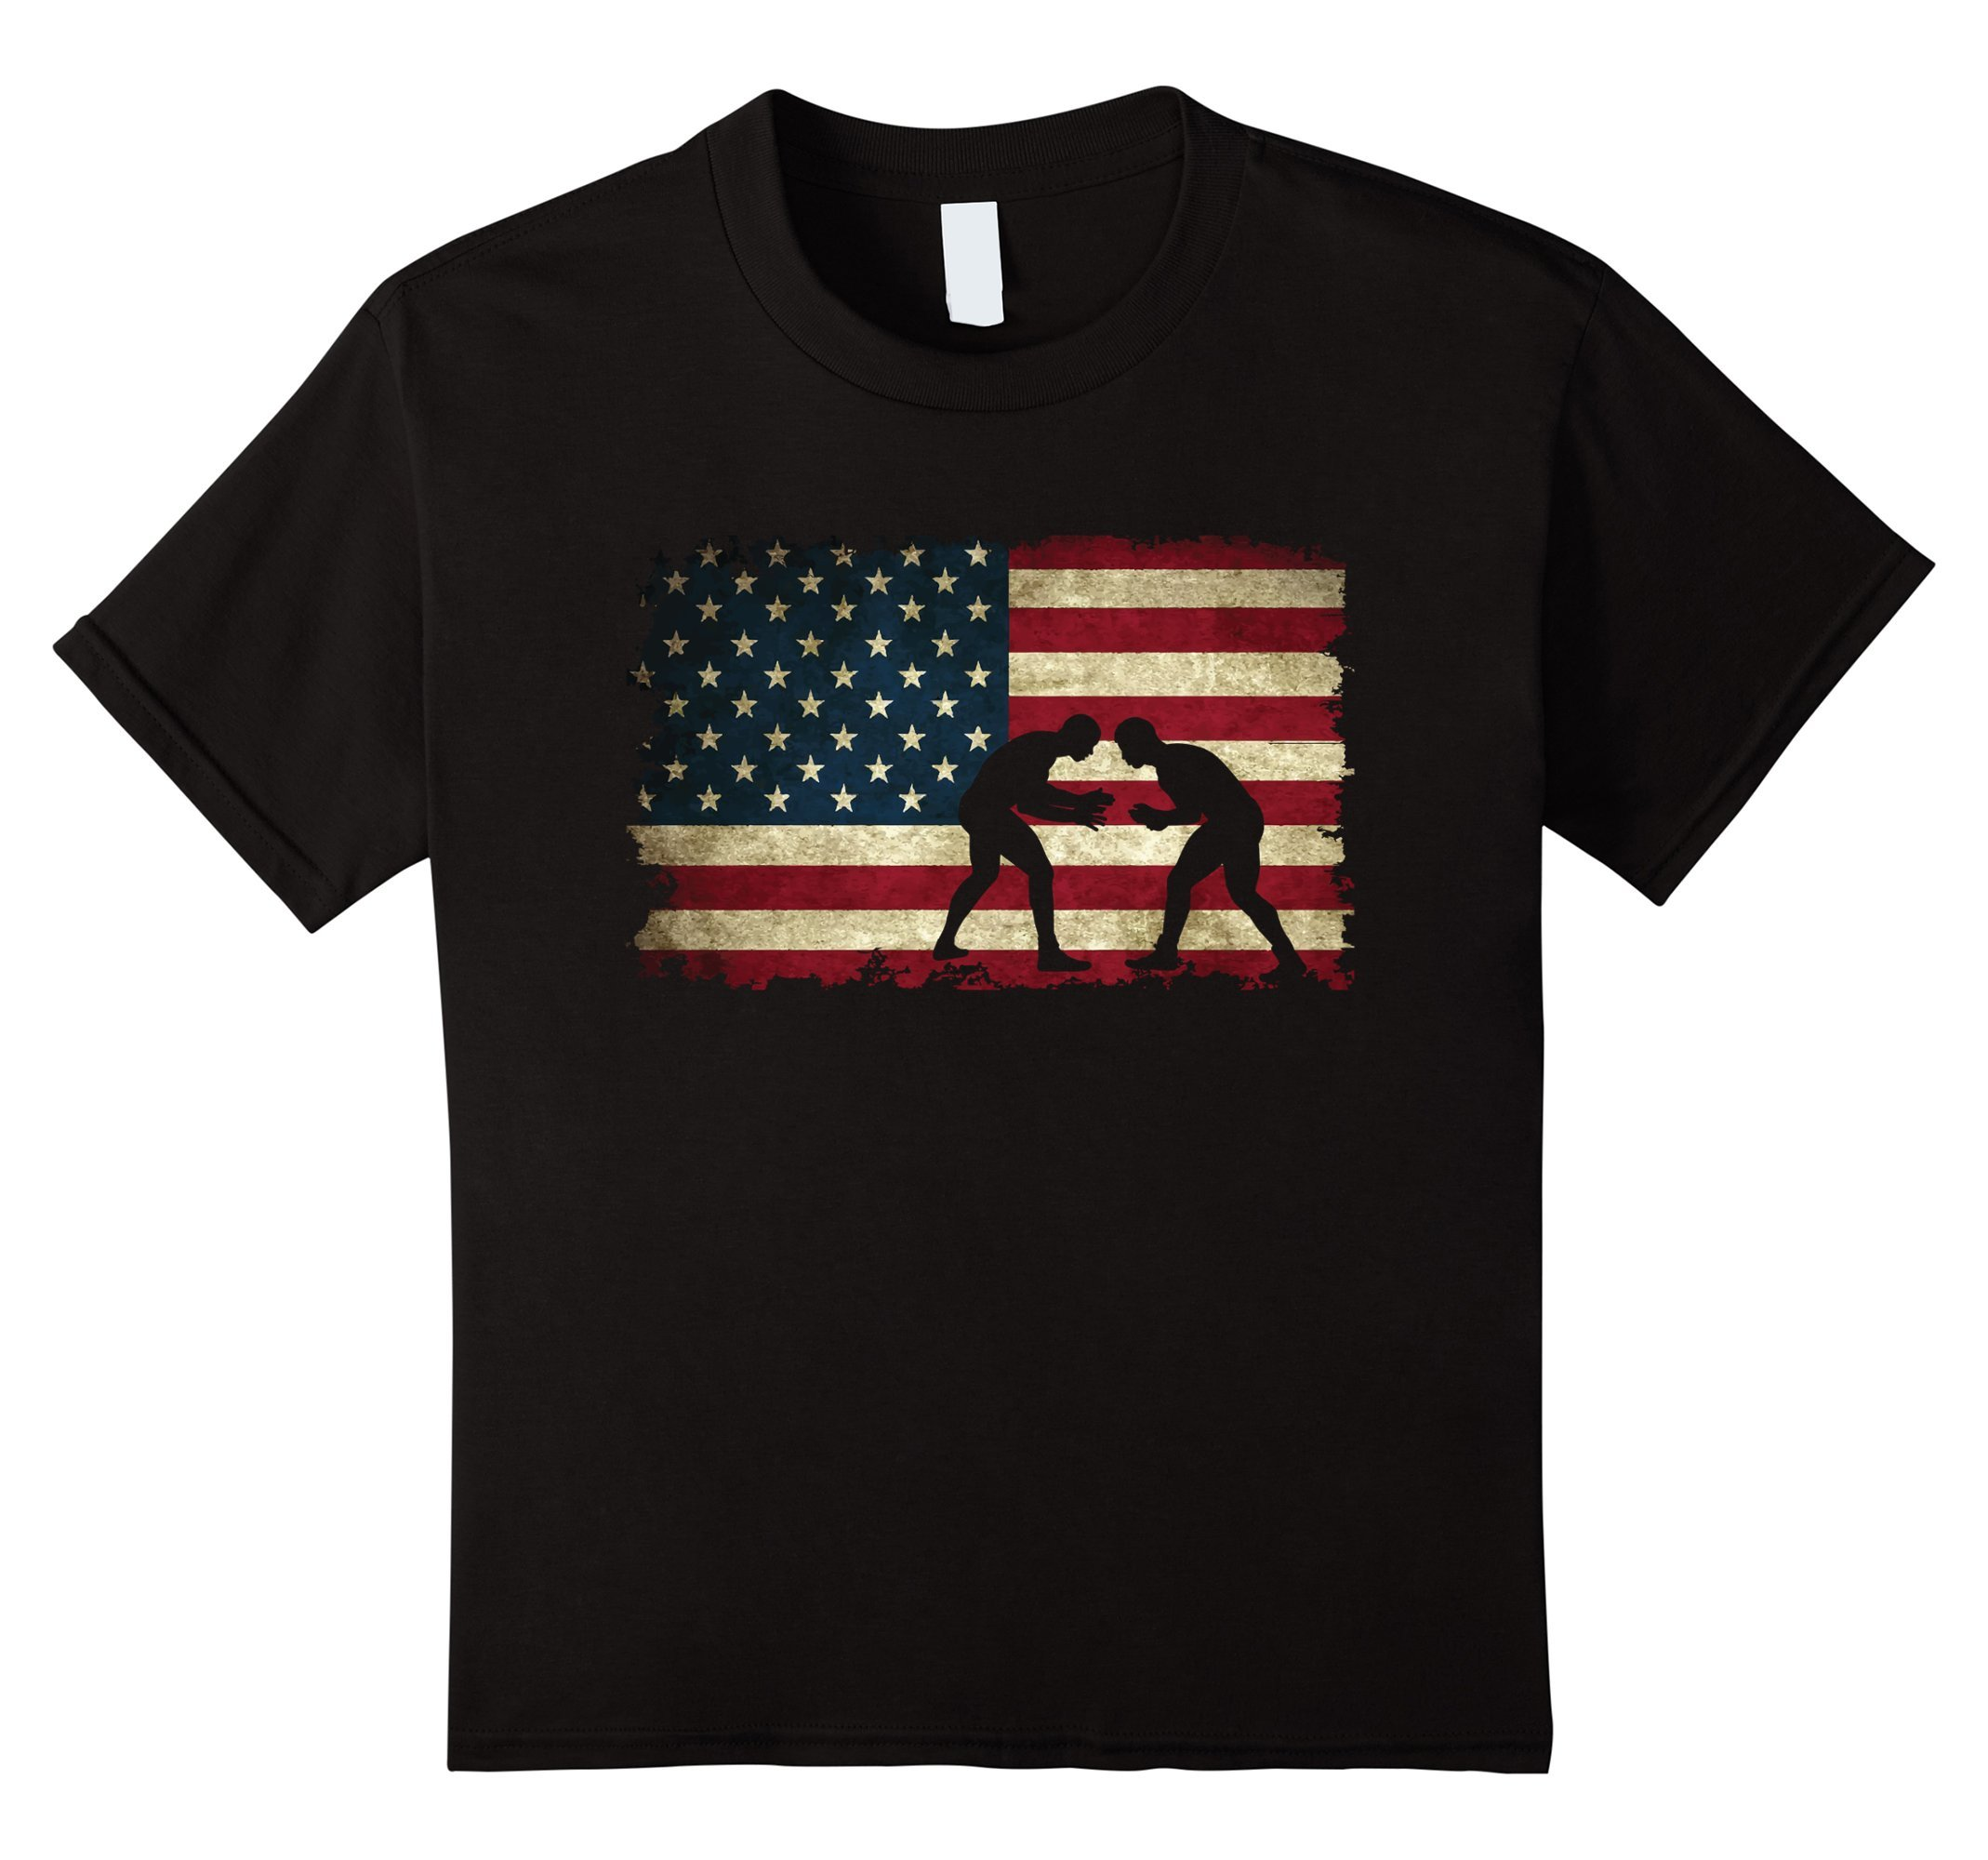 Kids Wrestling American Flag Tee Shirts Gift for a Wrestler 10 Black by Wrestling T-Shirts Gifts & Apparel